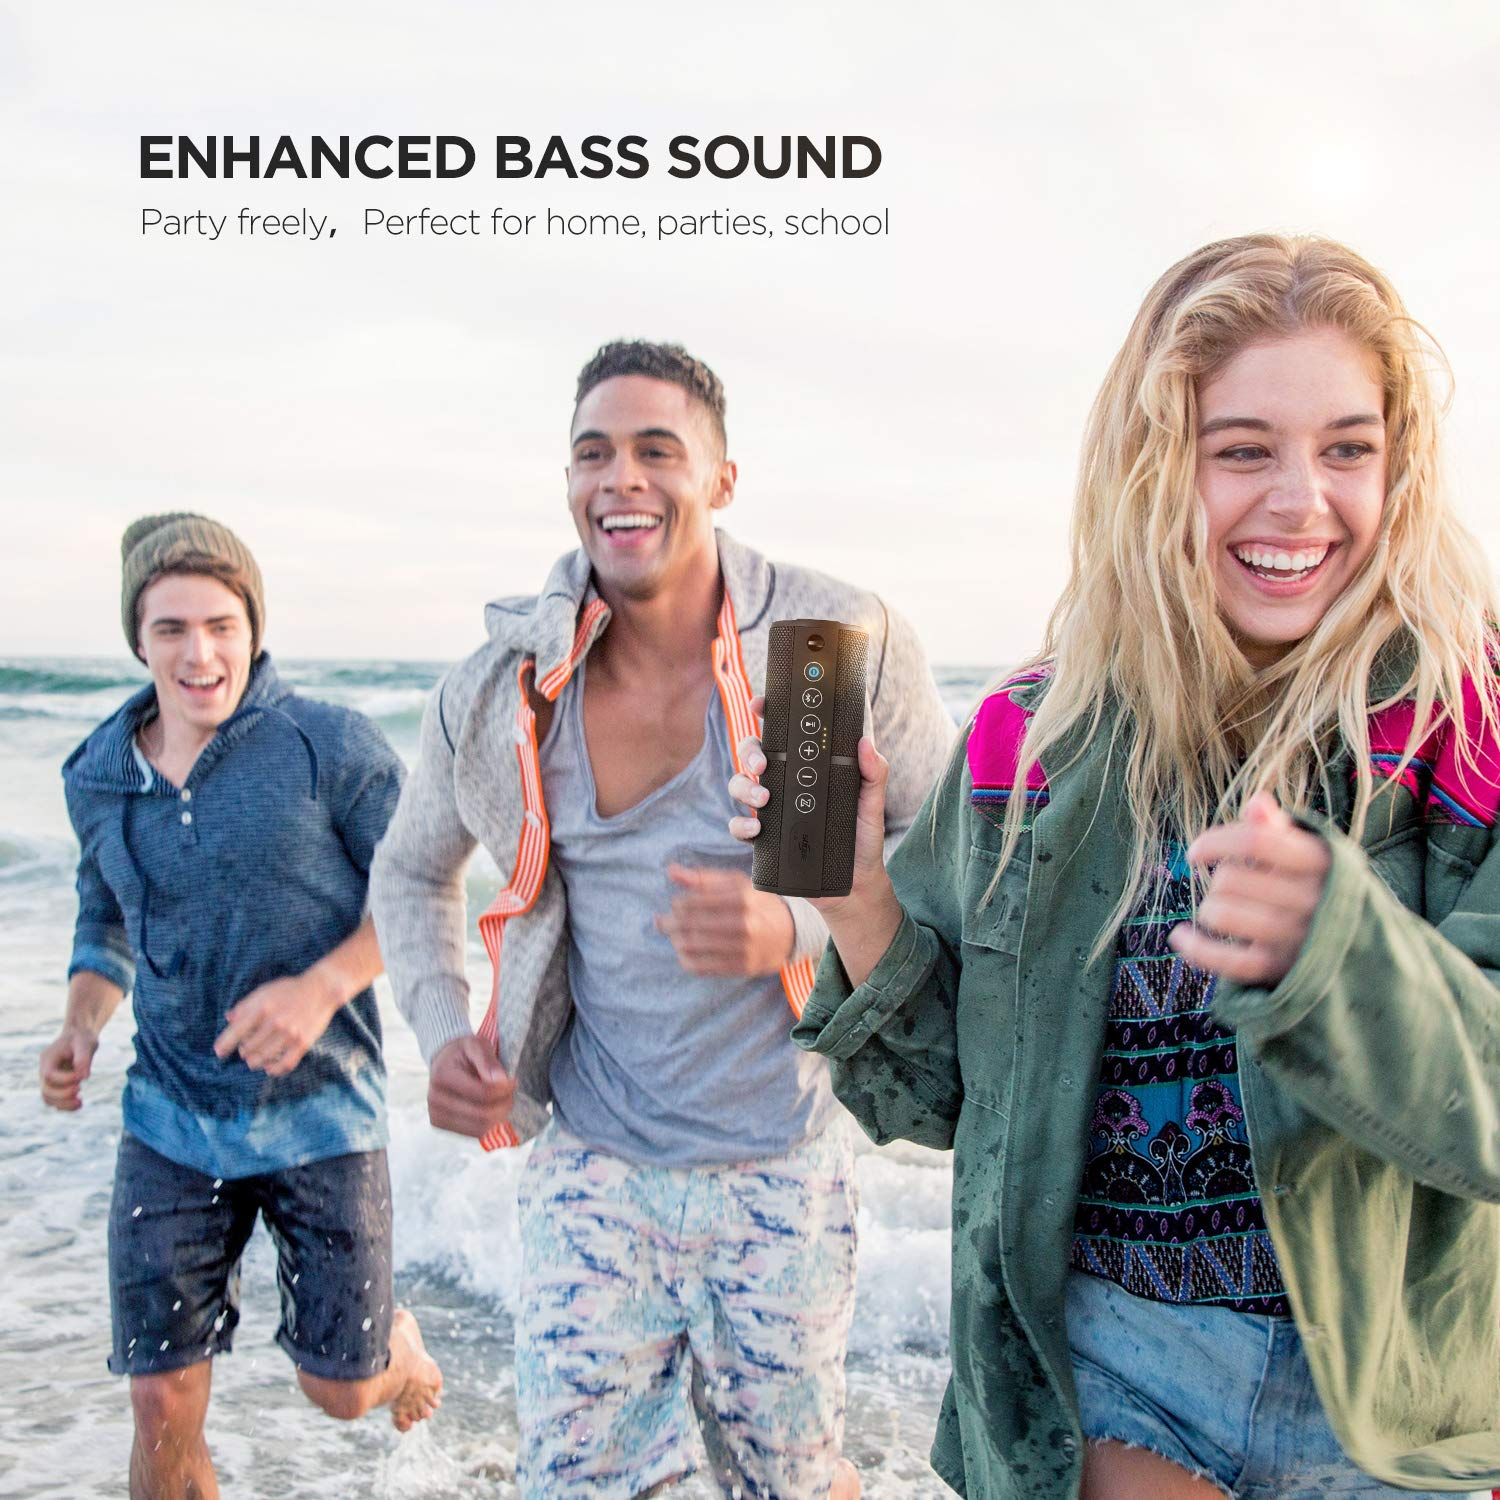 Sbode Bluetooth Speakers Portable Waterproof Outdoor Wireless Speaker Enhanced Bass FM Radio for Beach Shower /& Home Sync Together Auto Off Built in Mic TF Card